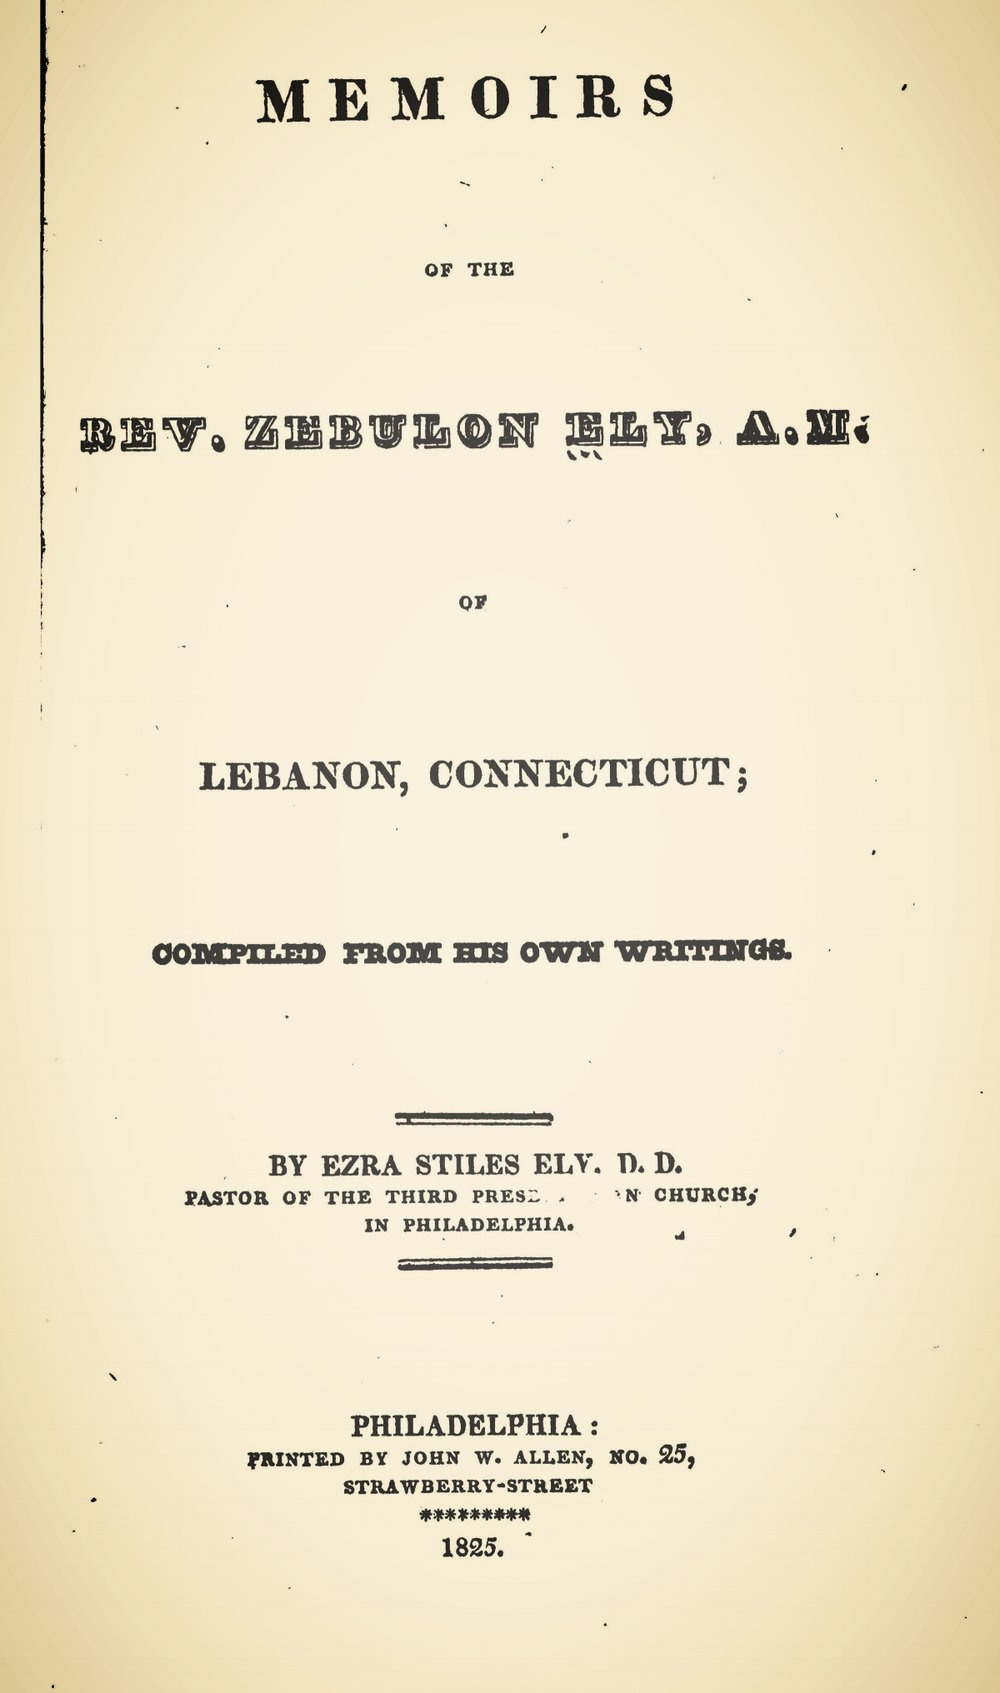 Ely, Ezra Stiles, Memoirs of the Rev. Zebulon Ely, A.M. Title Page.jpg